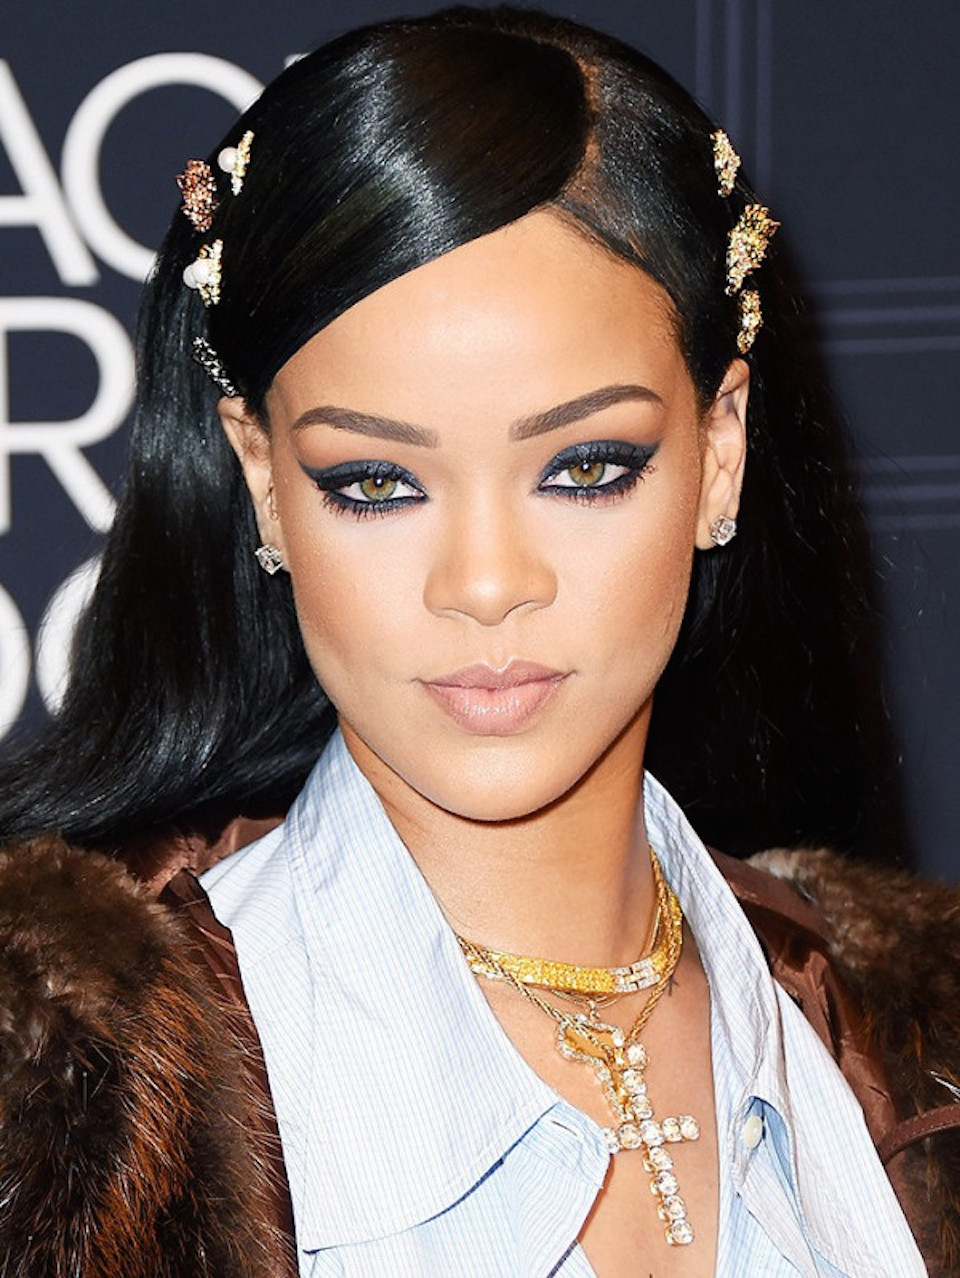 both-side-how-to-style-hair-accessories-clip-barrettes-brooch-collection-rihanna-trend.jpg